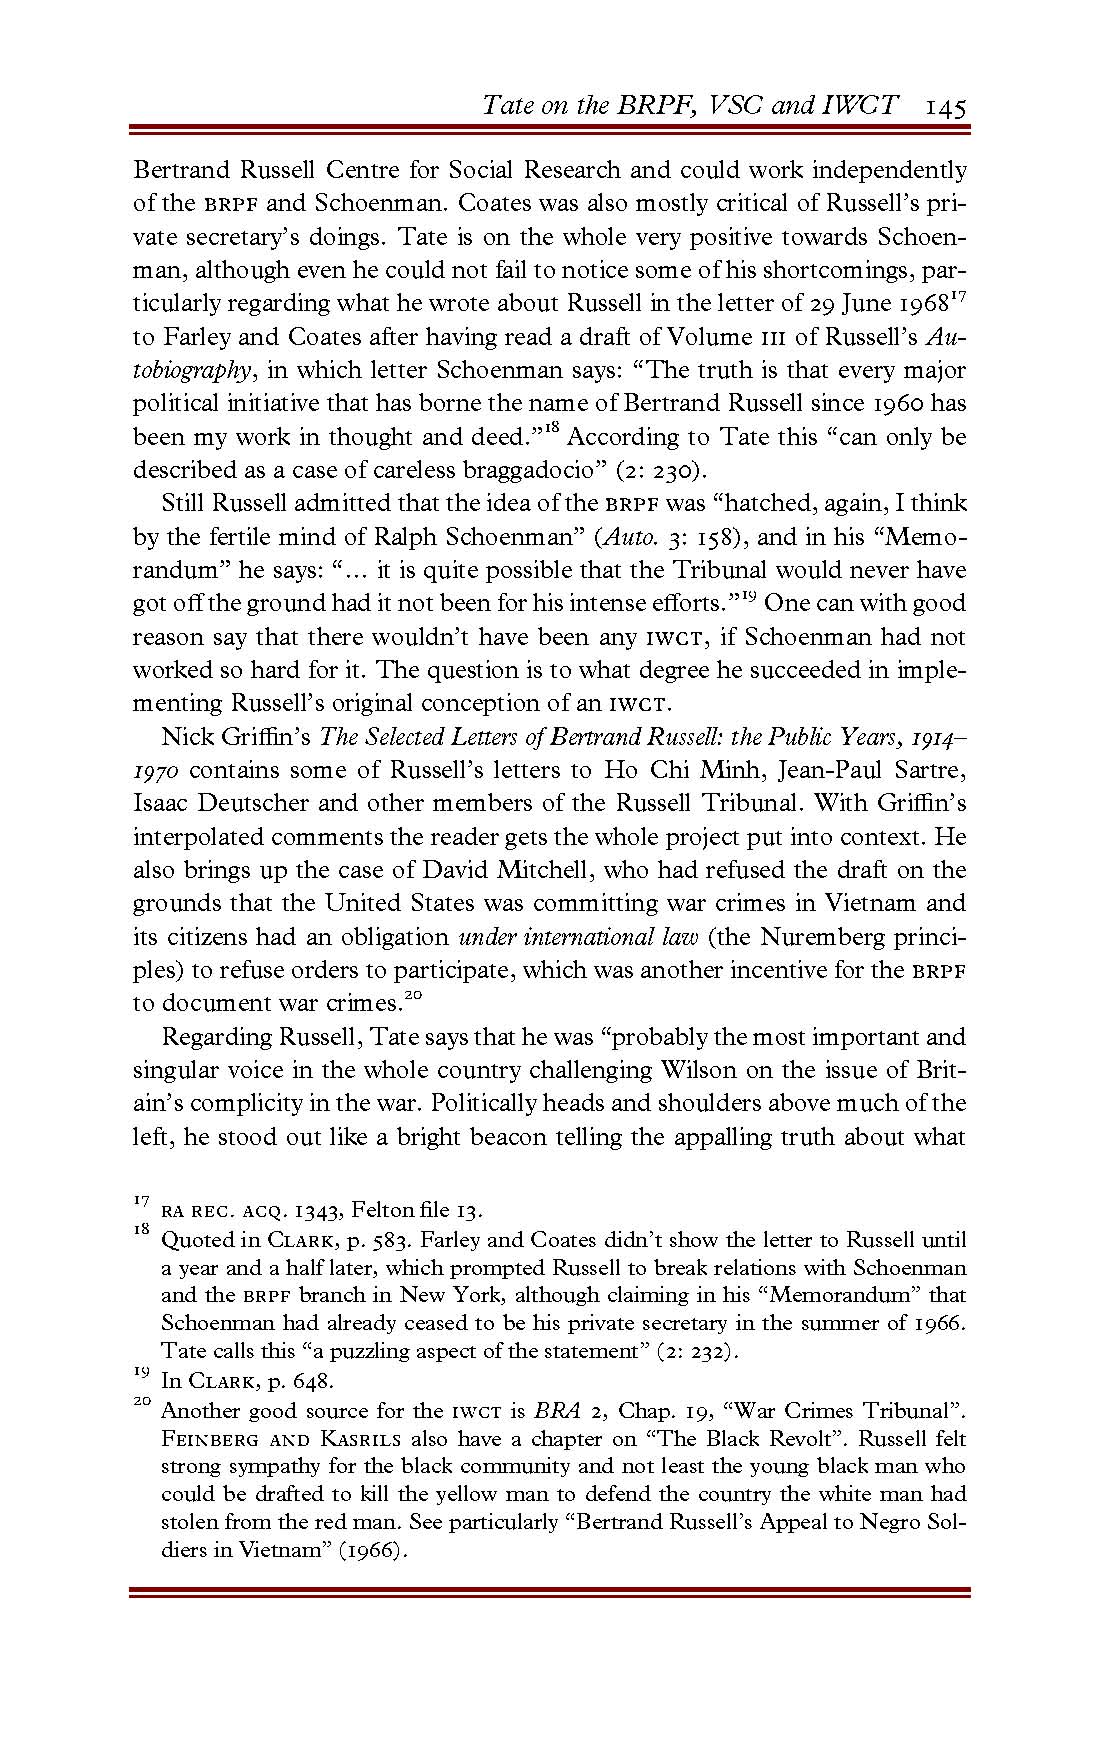 Anderson-- Pages from RJ 3402 050 red-5 (2)-1_Page_11